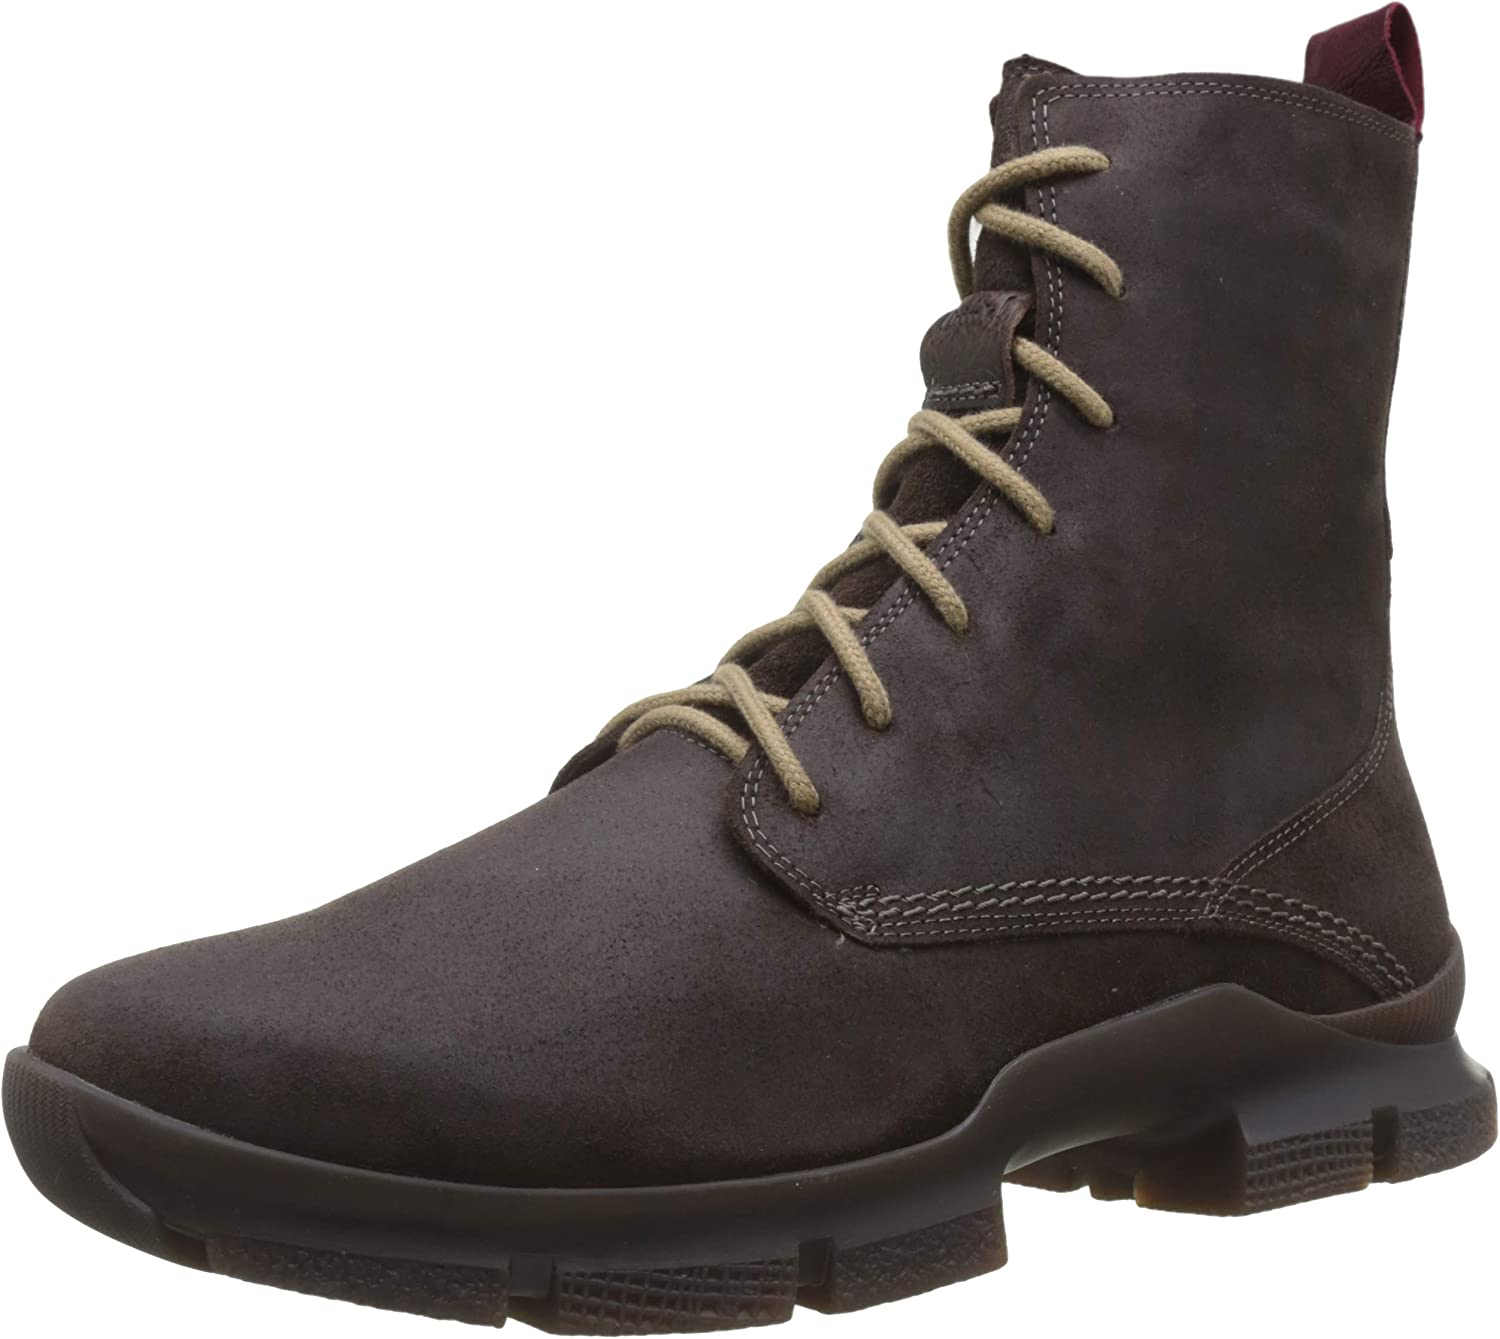 THINK Austin Mall Men's Sale Special Price Ankle Classic Boots